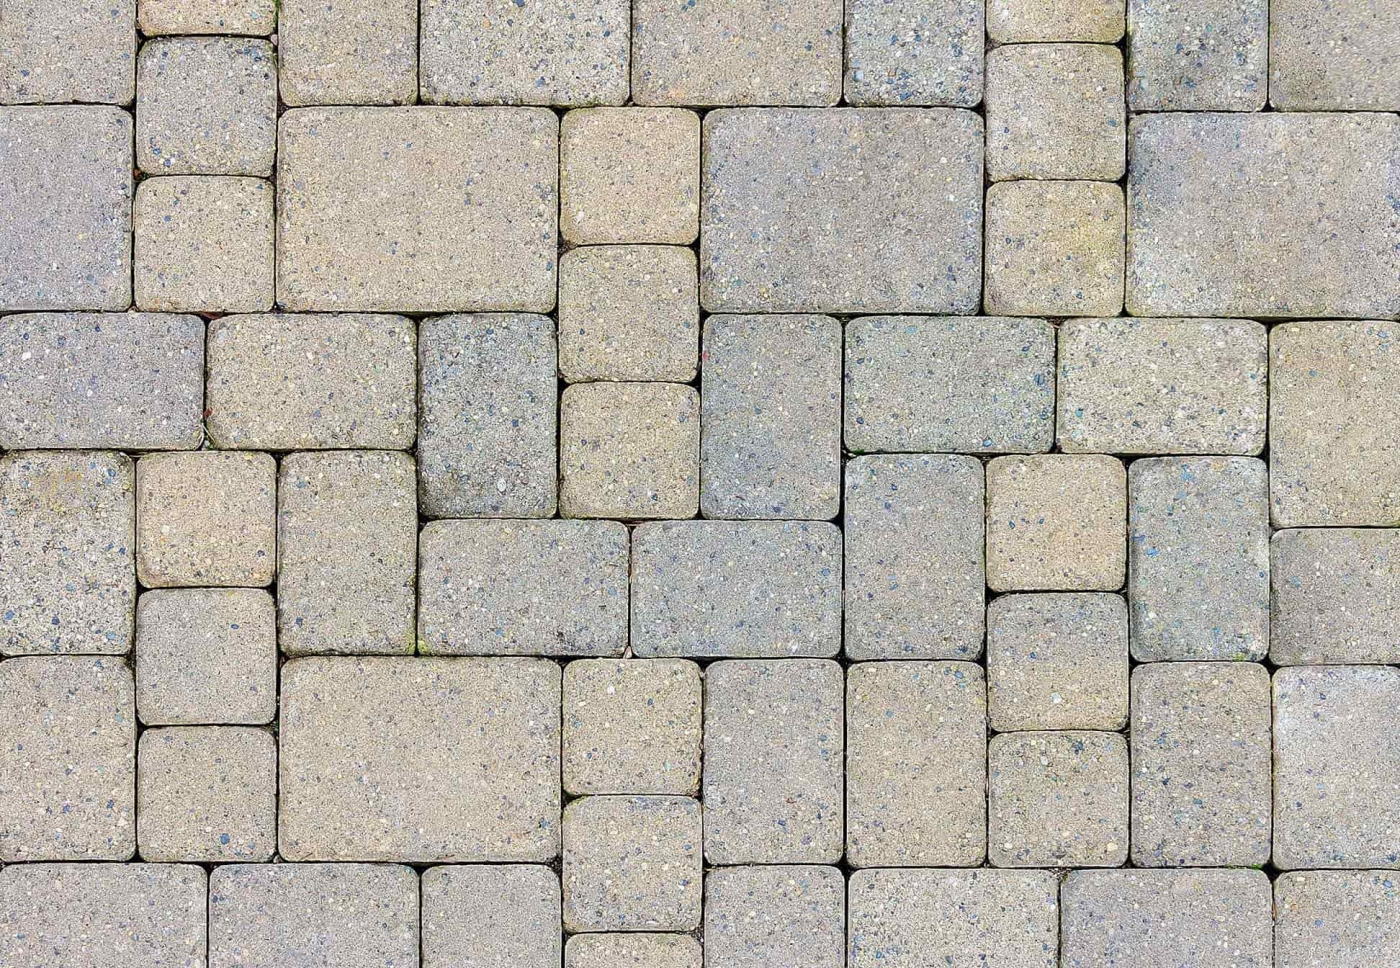 Block paving blocks